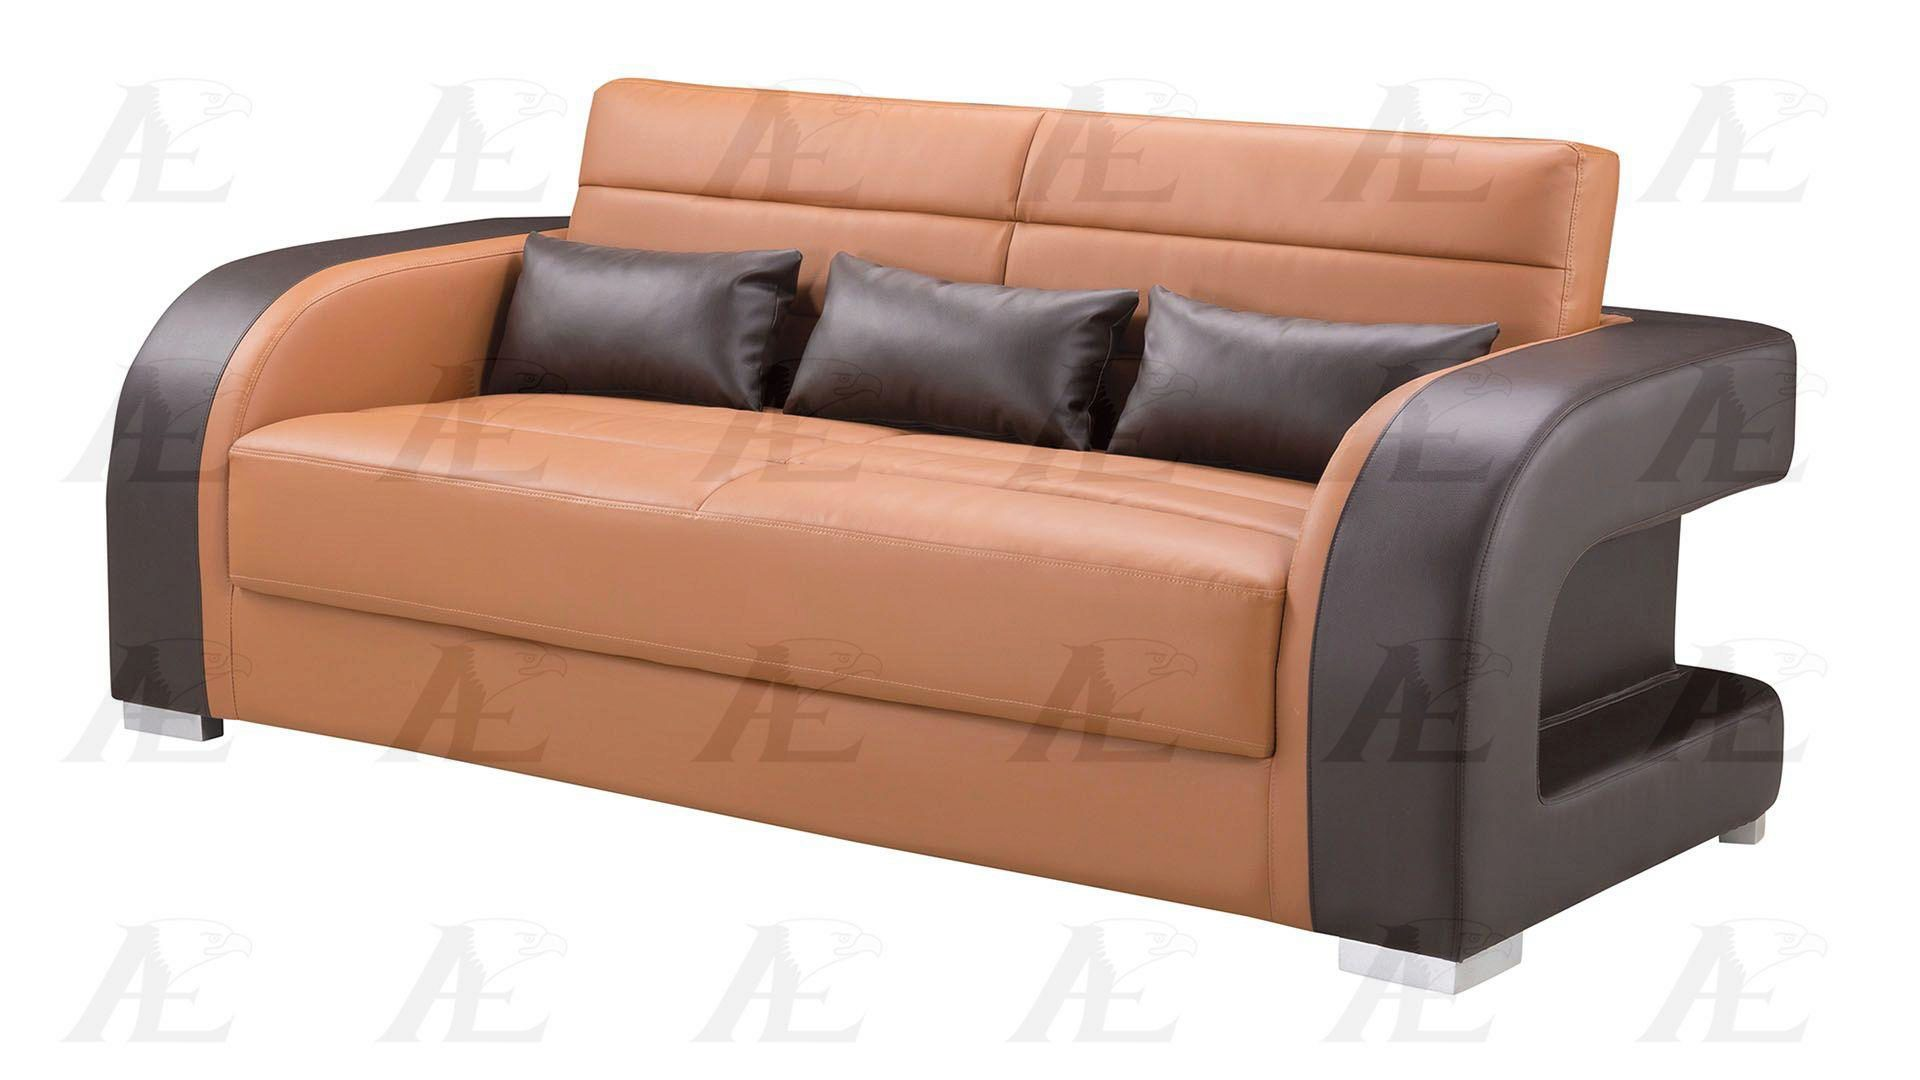 Picture of: Camel Dark Brown Faux Leather Sofa Set W Coffee Table 4pcs American Eagle Ae D816 Ae D816 Ca Db Set 4